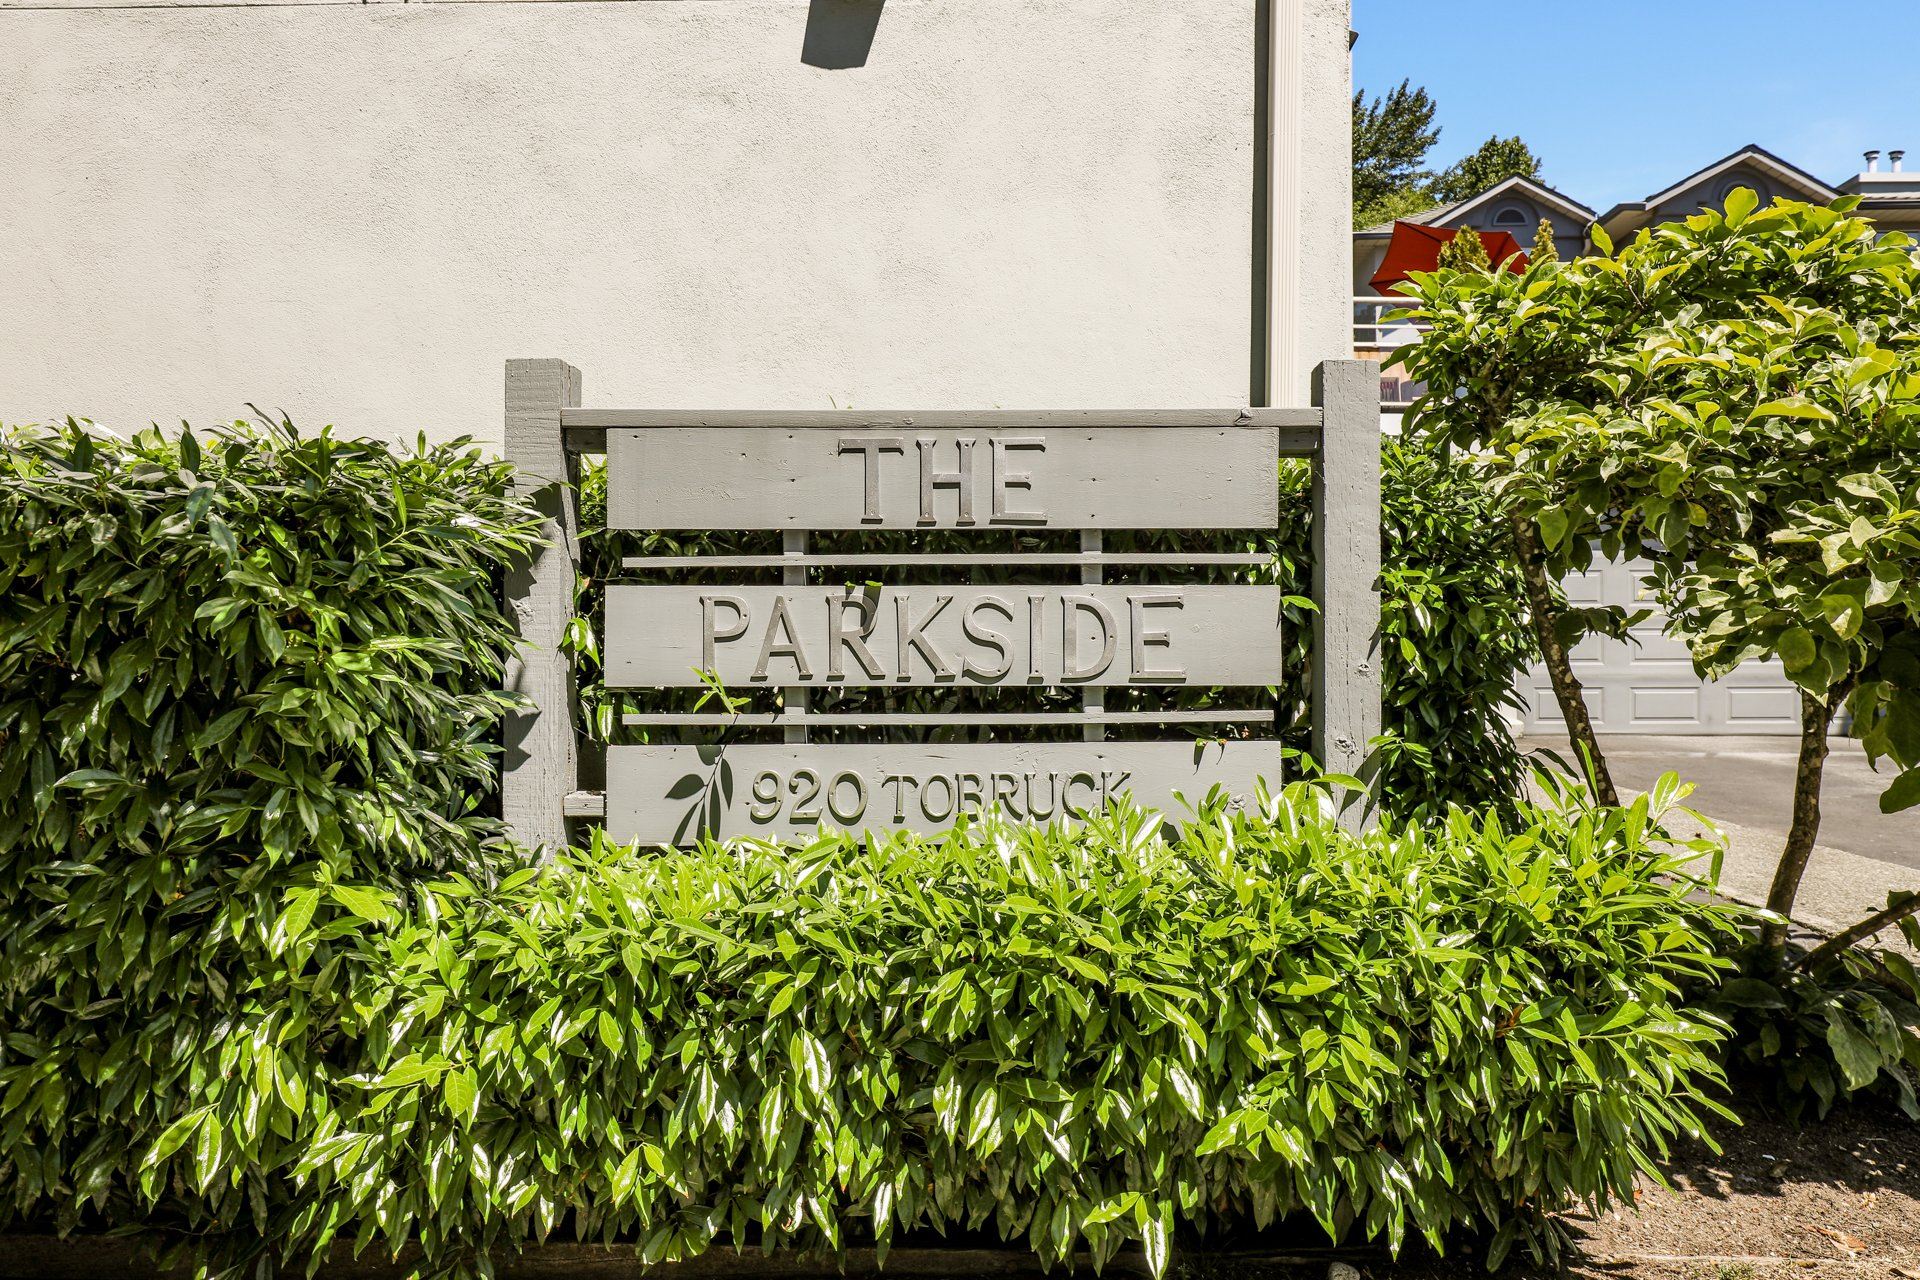 The Parkside - 920 Tobruck Ave | Townhomes For Sale + Alerts